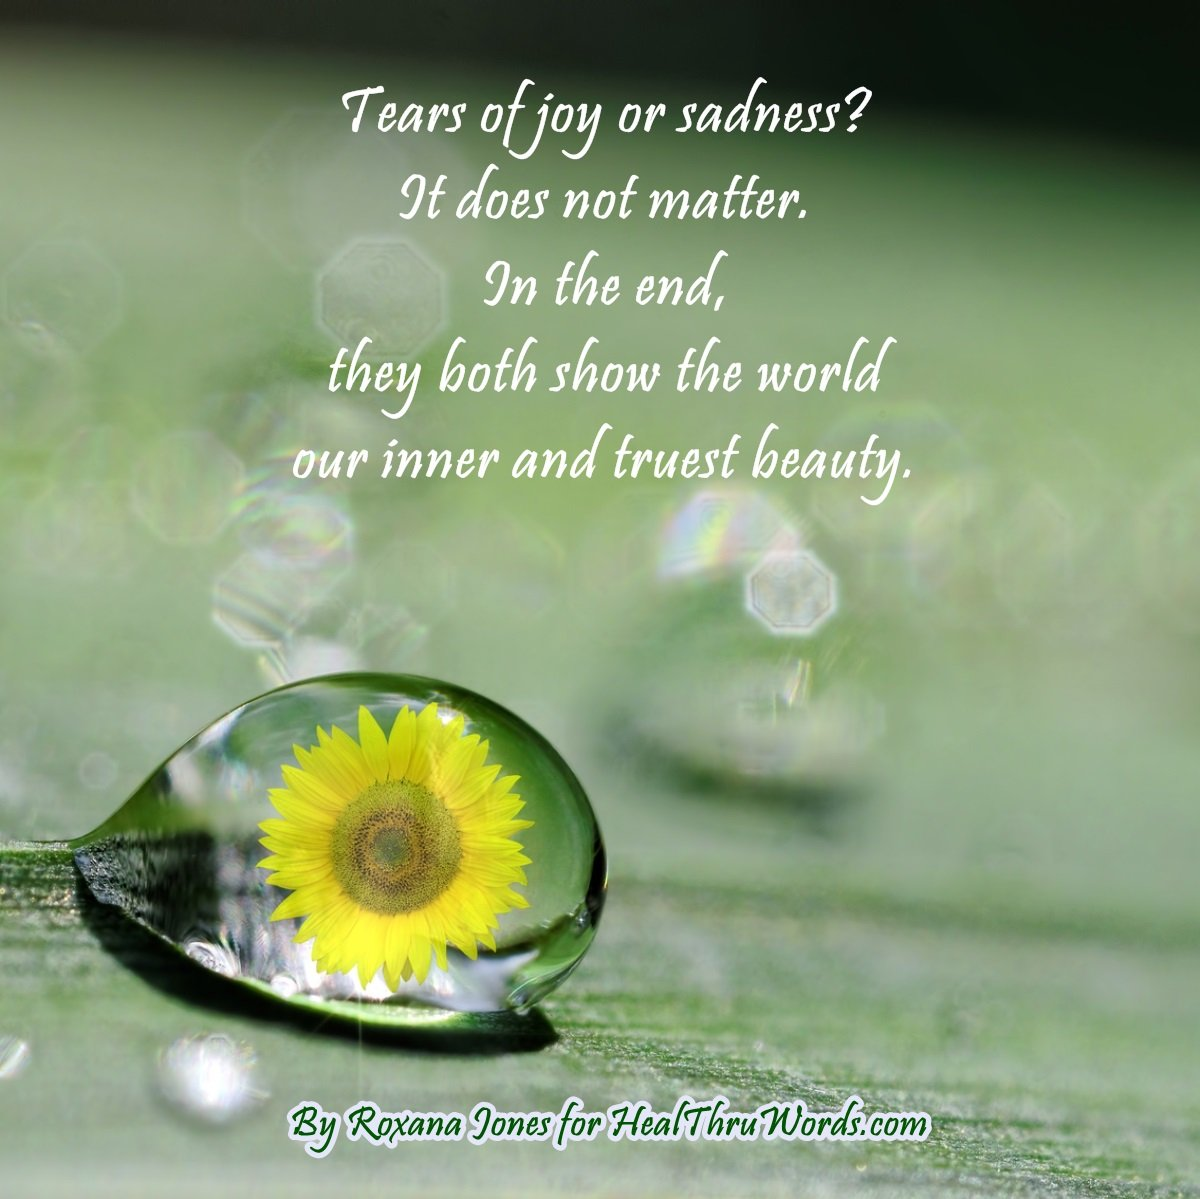 Inspirational Image: Nature of Tears